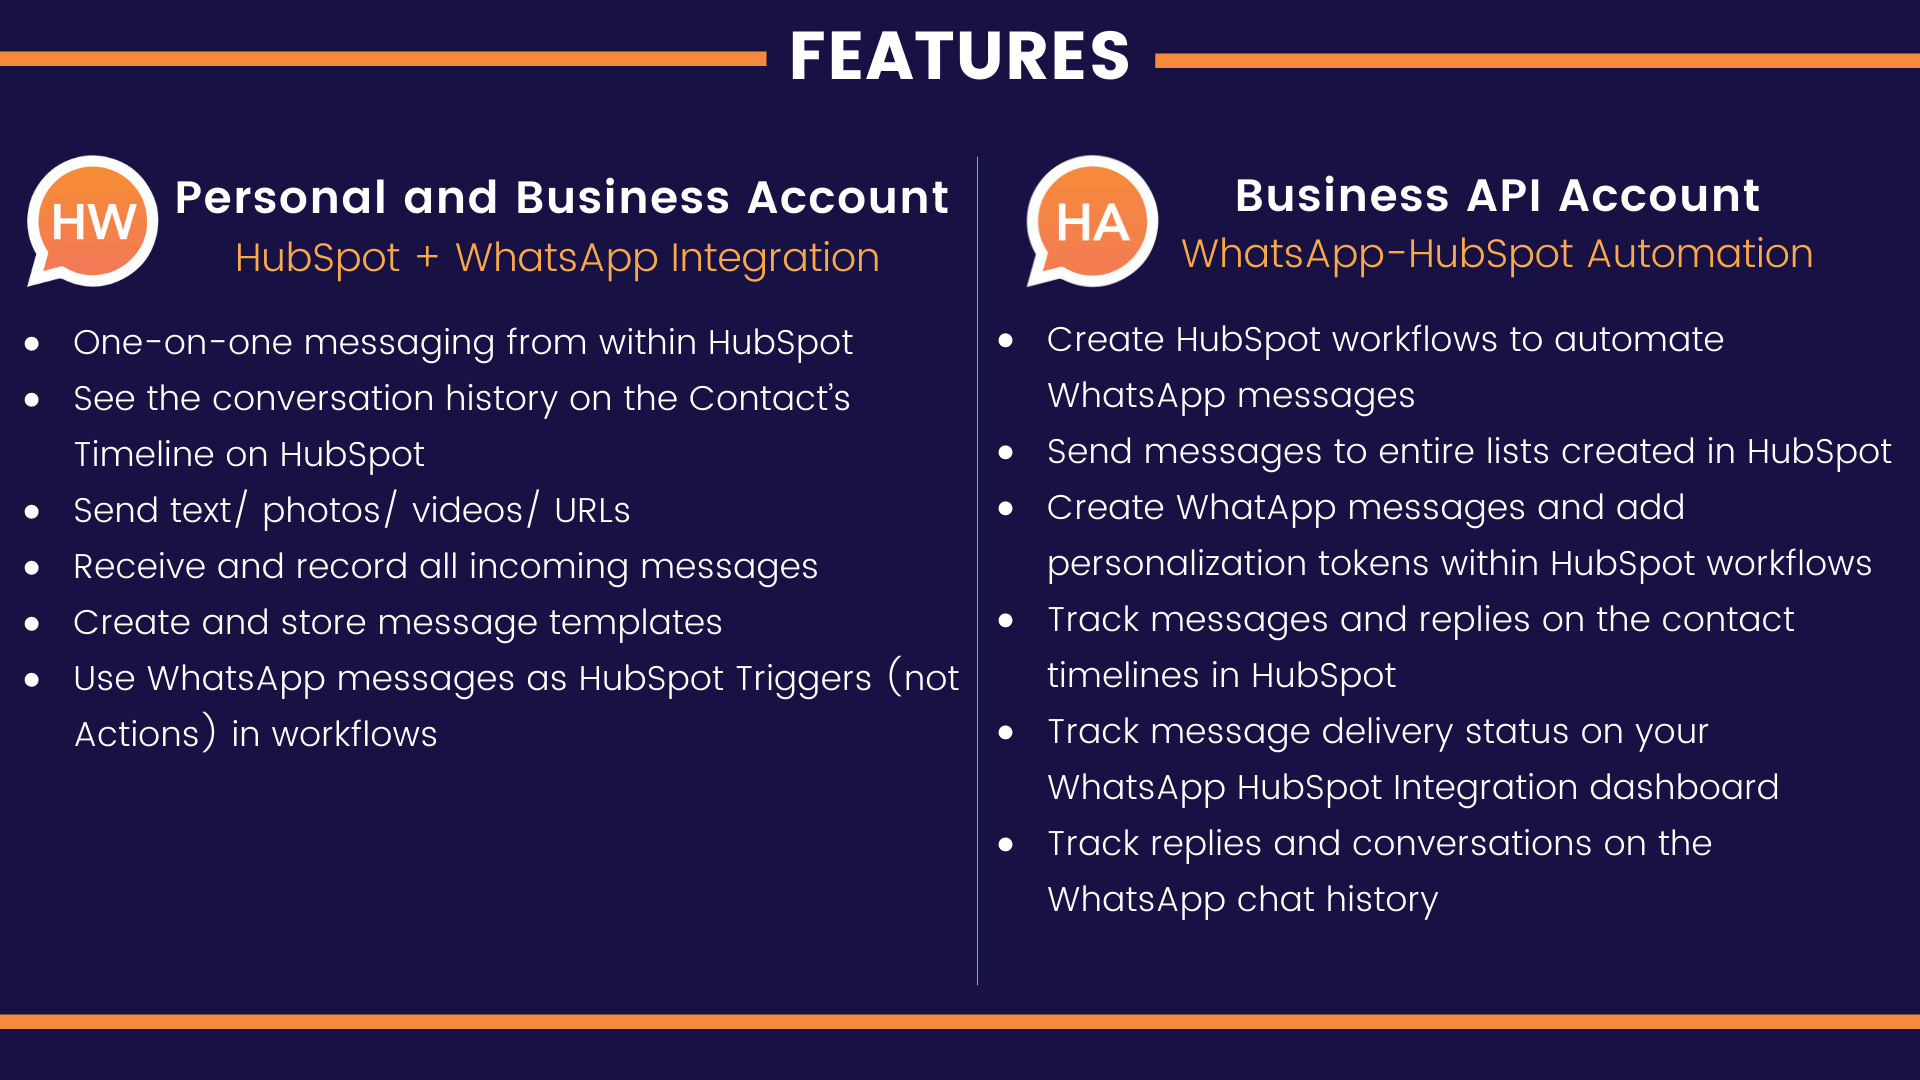 HubSpot WhatsApp solution features based on WhatsApp Accounts